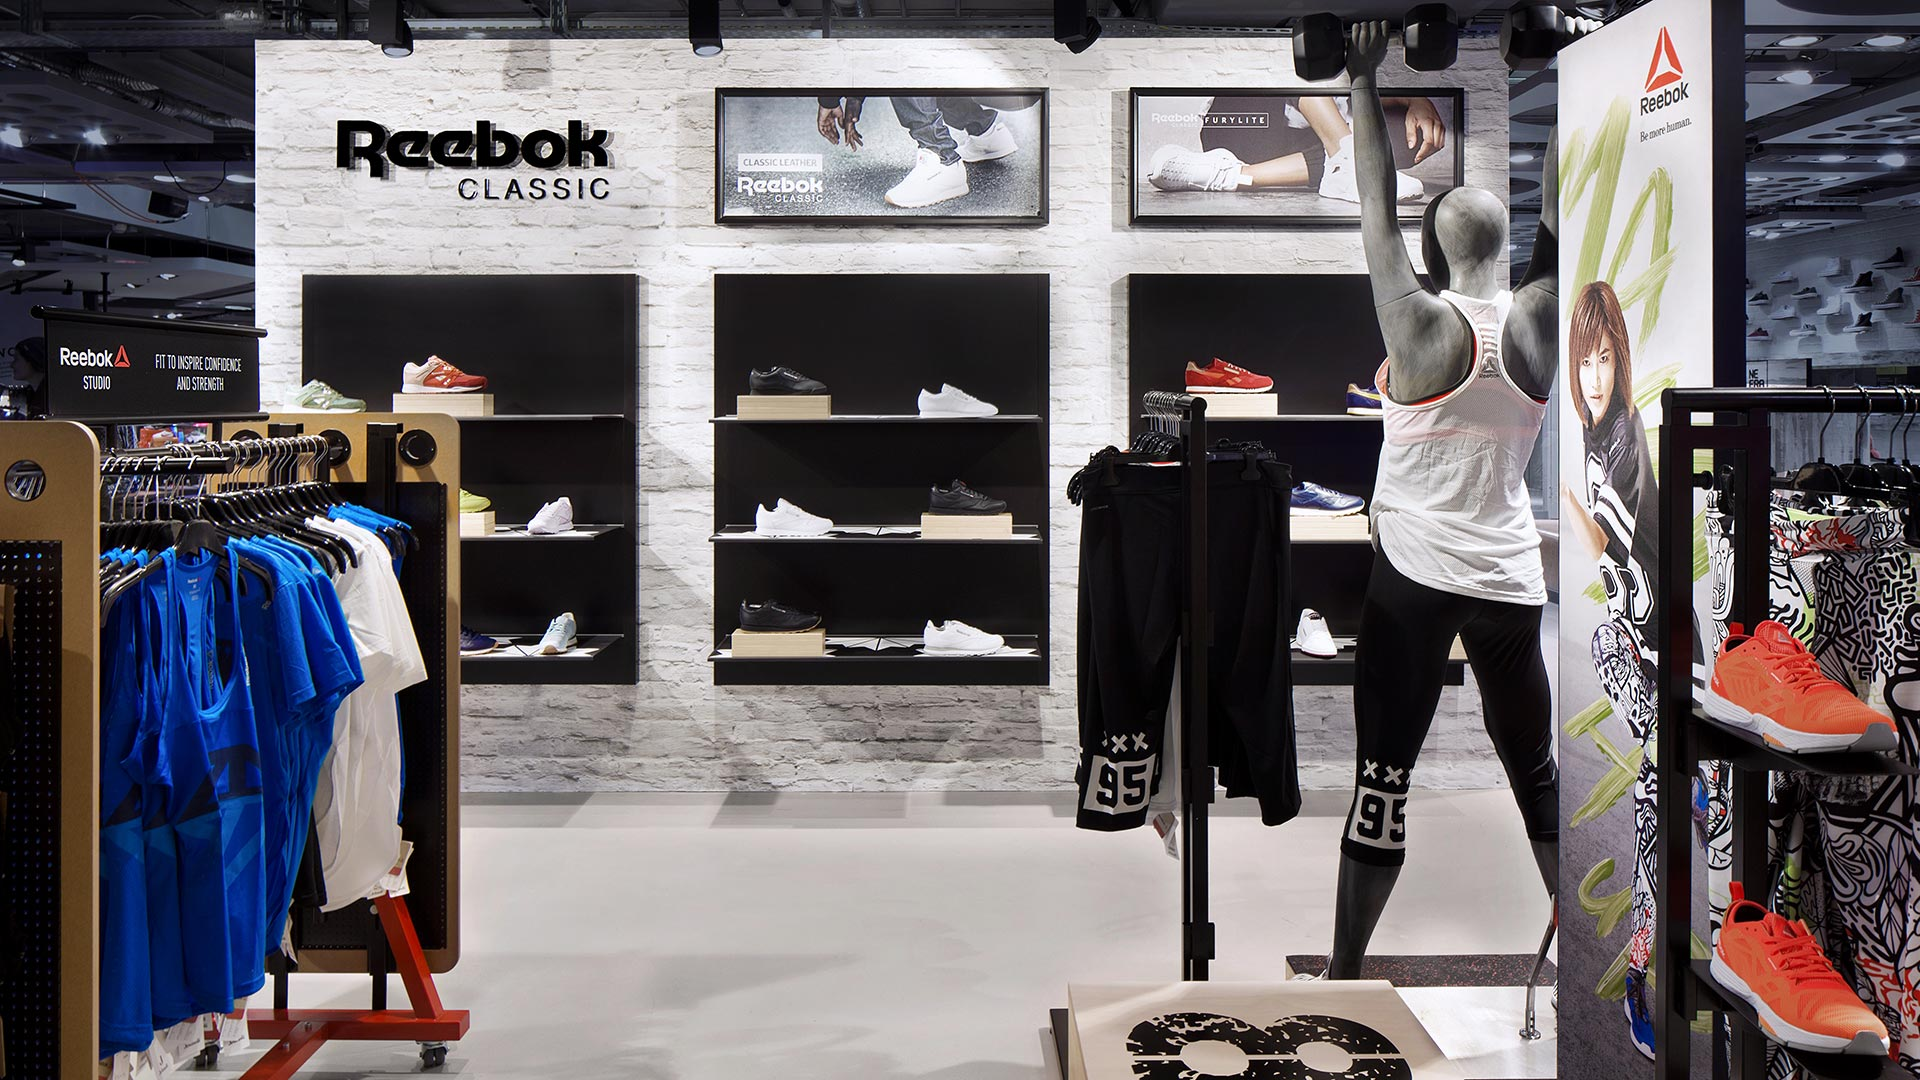 Dart stages the Reebok shop concept for the roll-out of the Reebok Shop-in-Shops 2016 in DACH